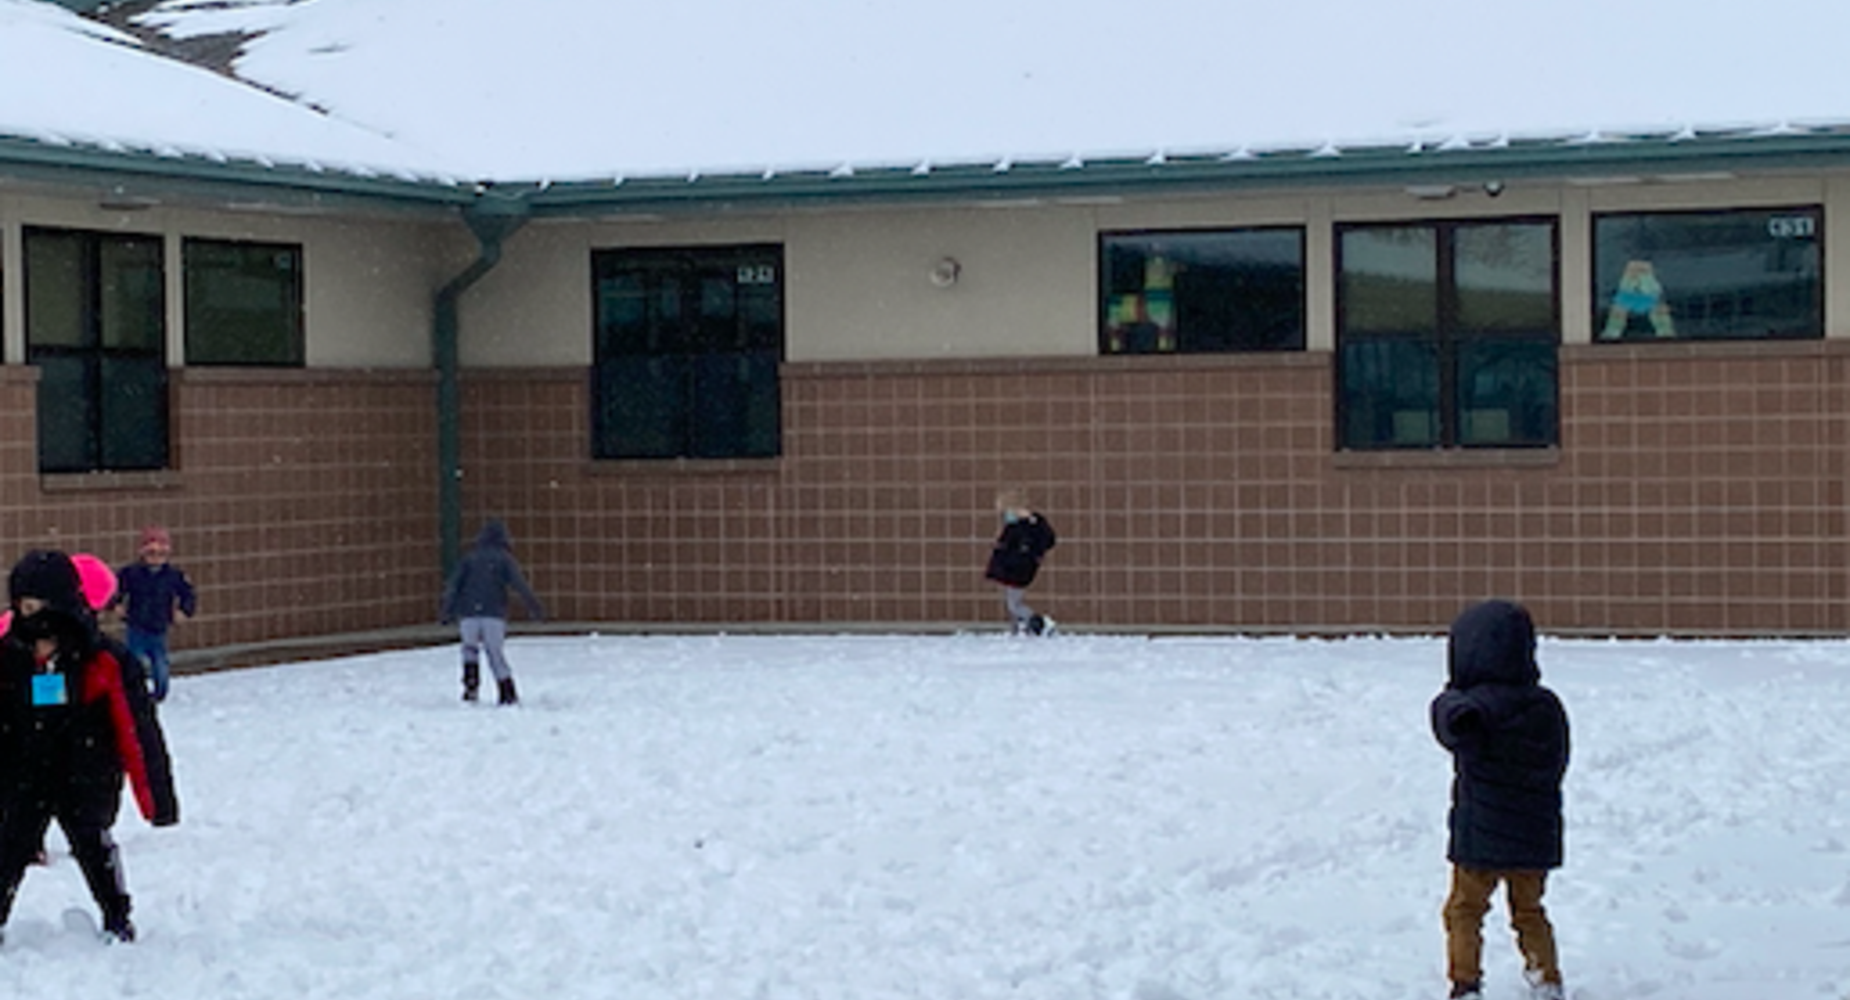 Playing in the snow Feb 12